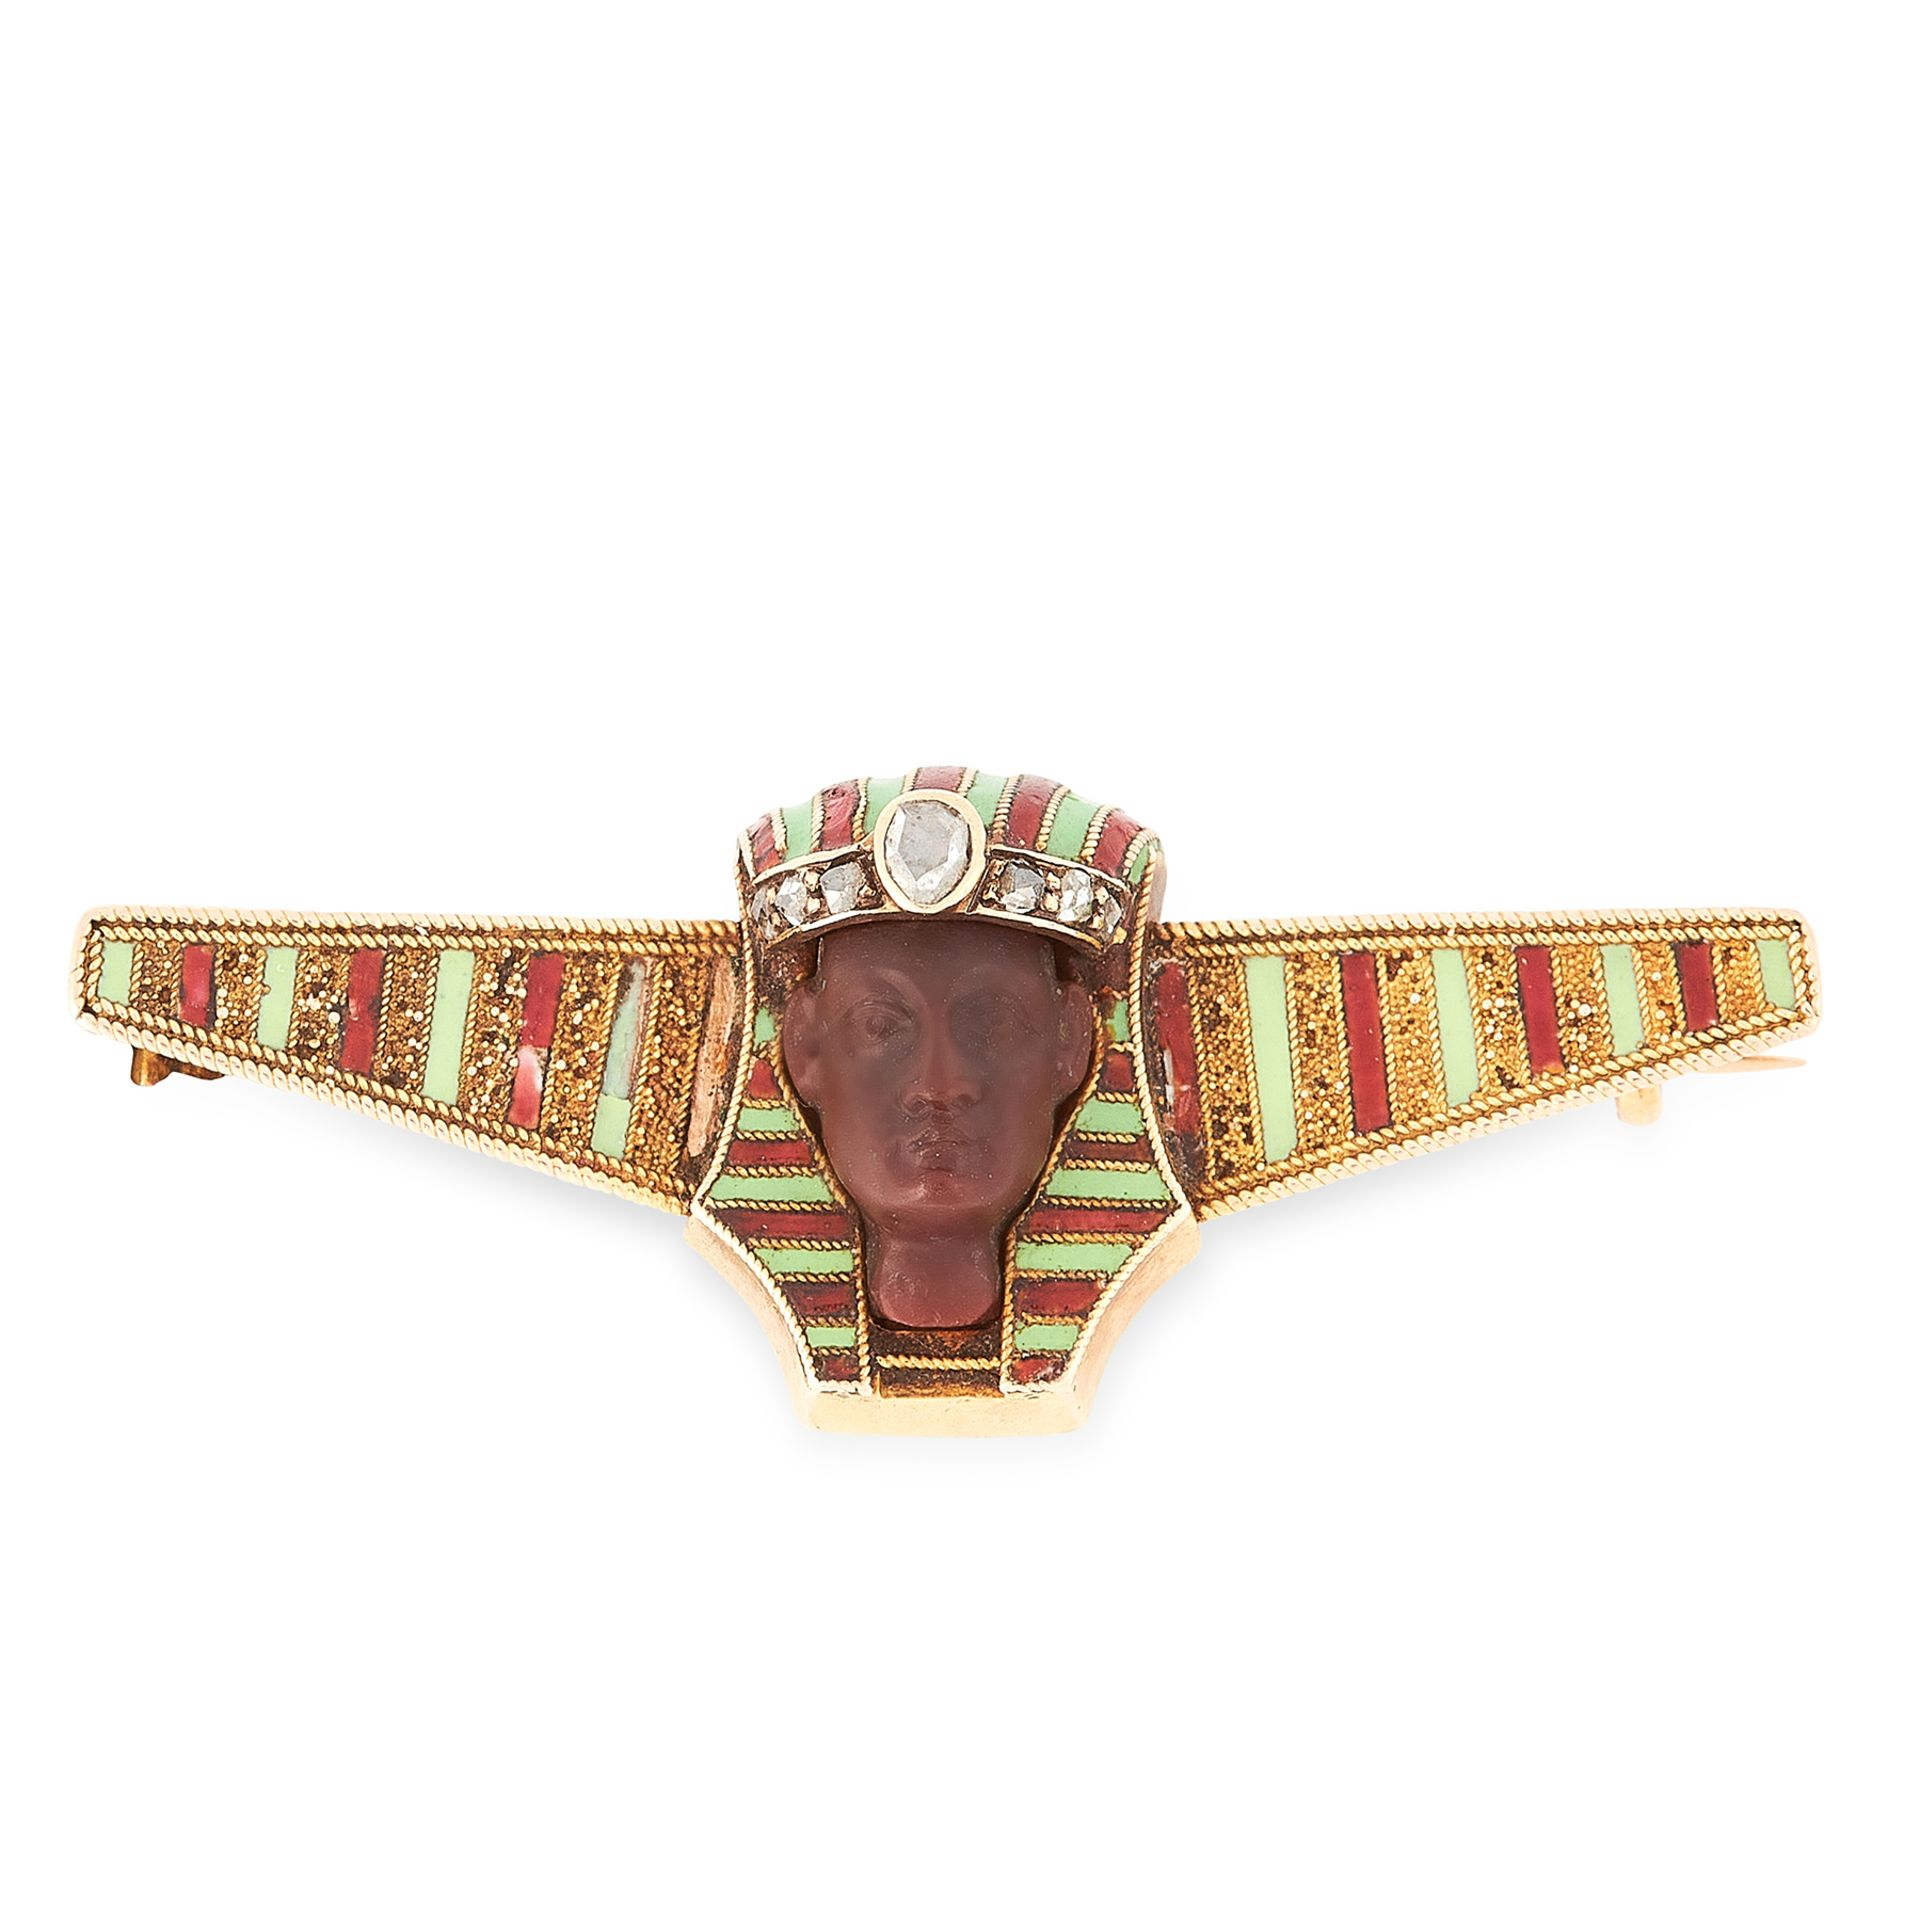 Los 25 - AN ANTIQUE HARDSTONE, DIAMOND AND ENAMEL BROOCH in yellow gold, in the Egyptian Revival manner, with